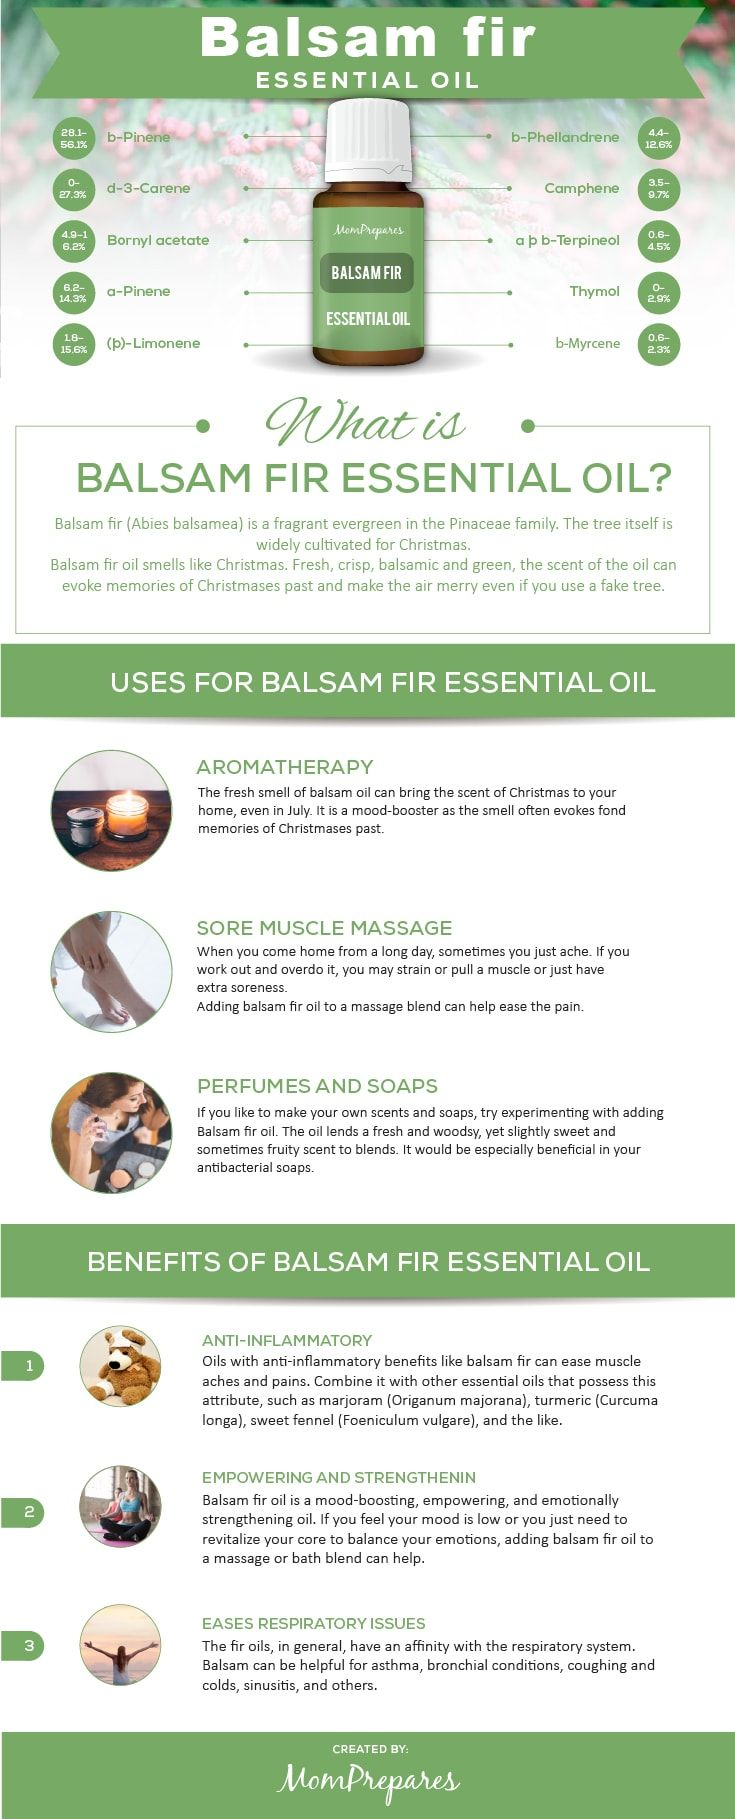 Balsam Fir Essential Oil - The Complete Uses and Benefits Guide